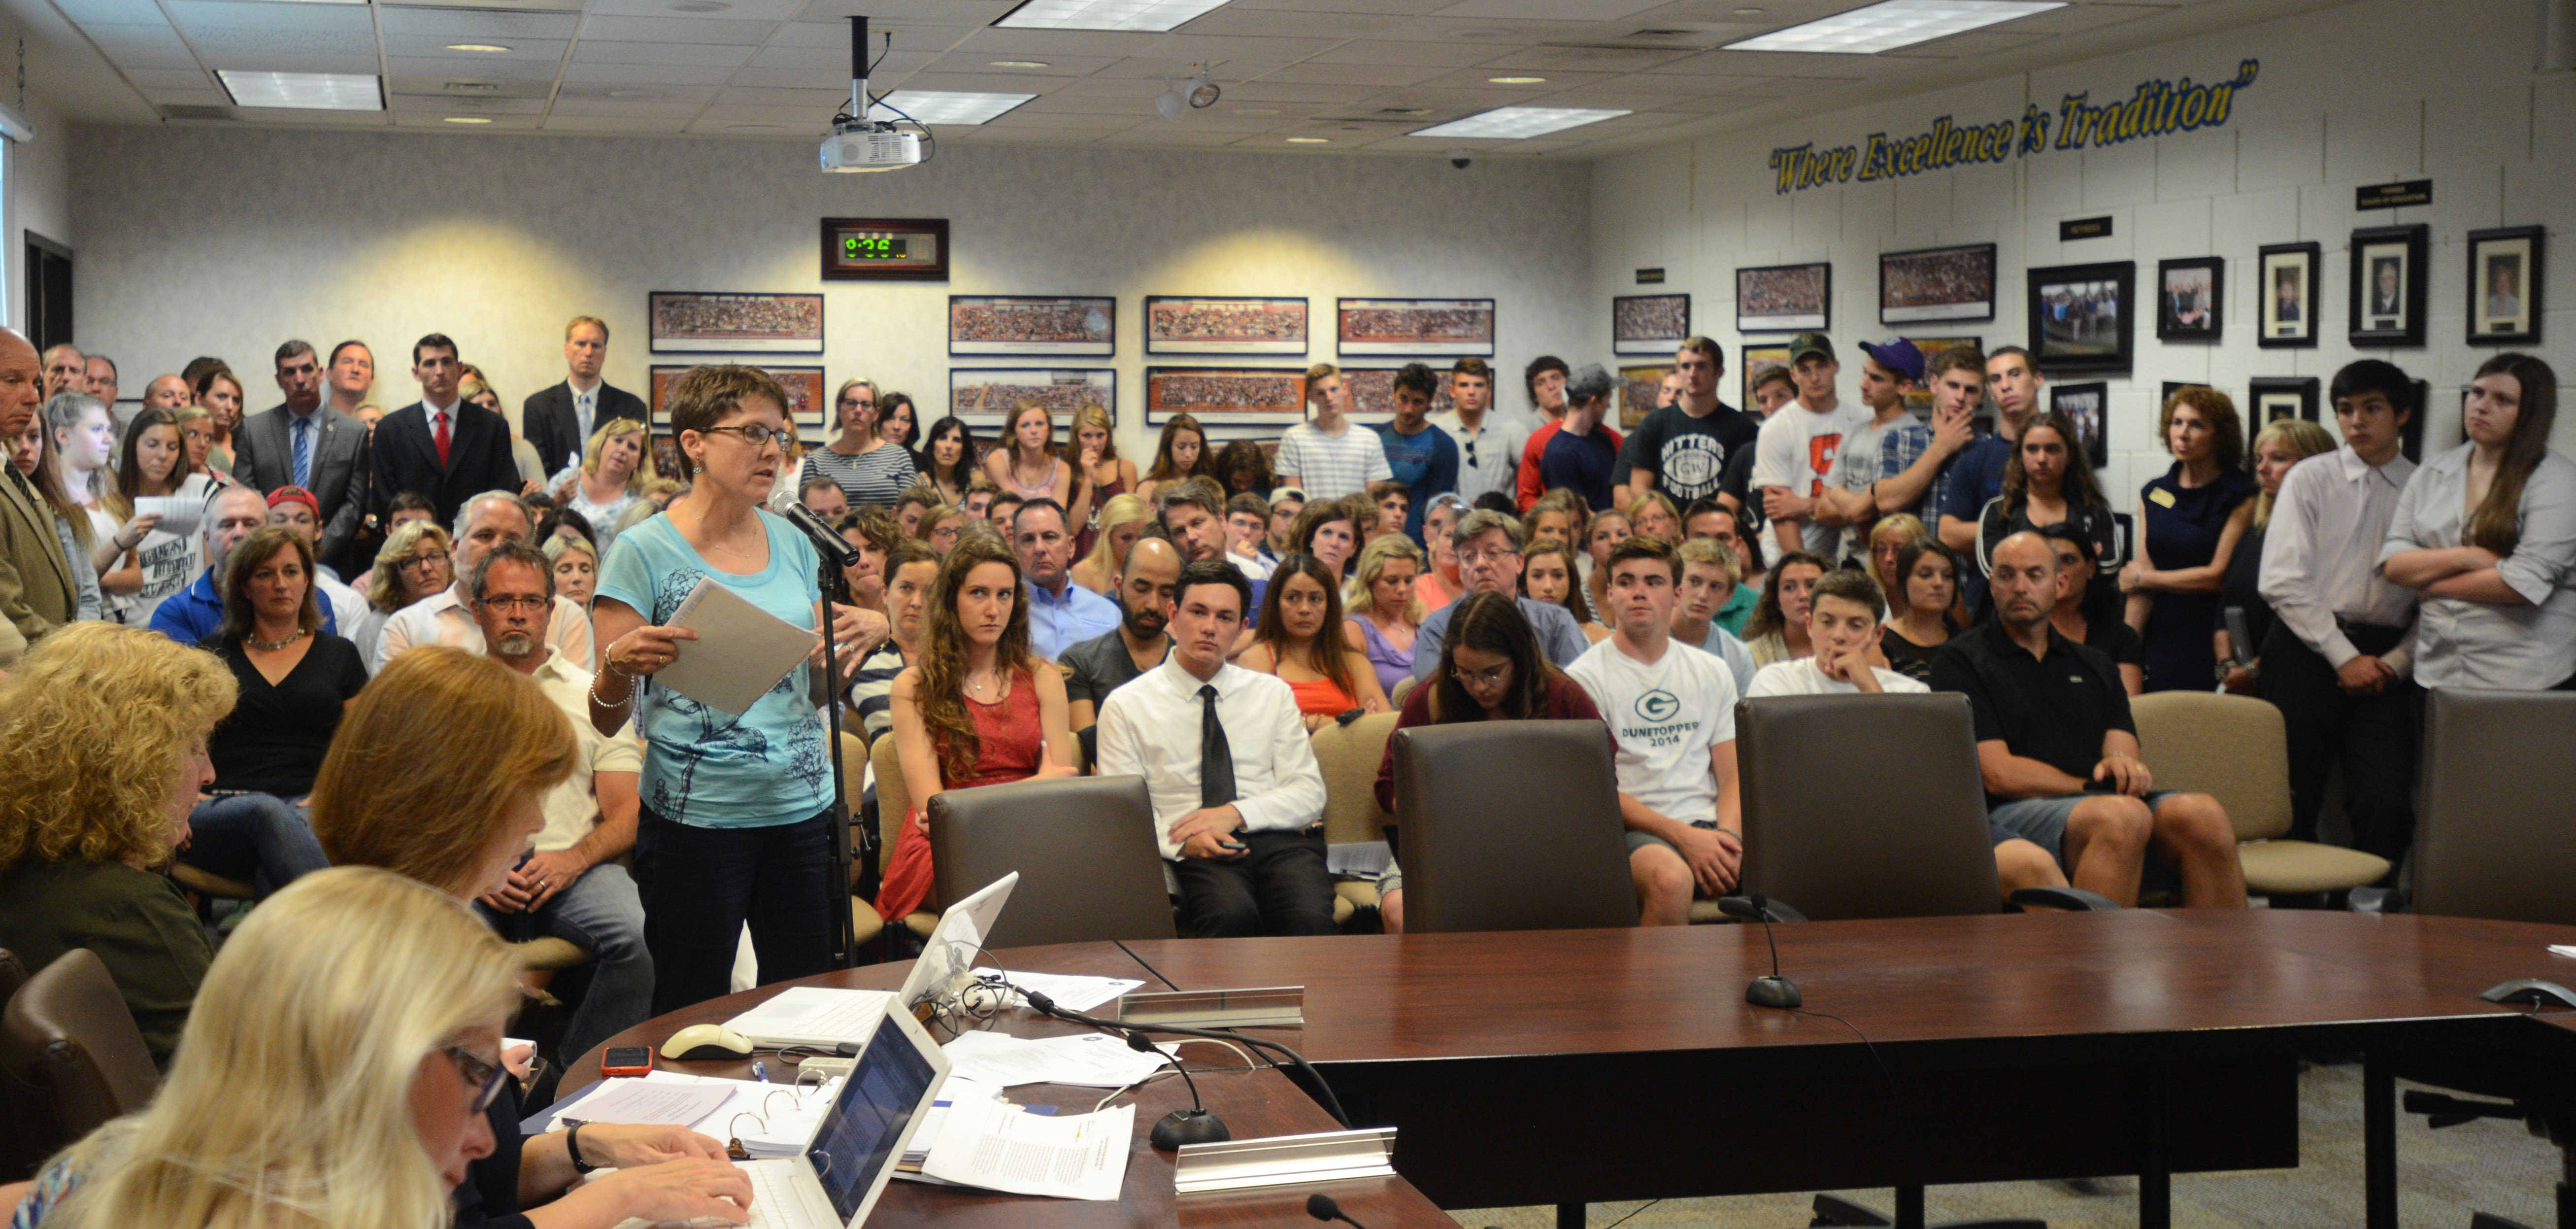 A large crowd listens during the public participation portion of  a school district 87 board meeting at the Robert C. Stevens Administrative Center in Glen Ellyn on Monday night. Members of the public addressed the issue of several students who were recently disciplined under the district's policy on alcohol.